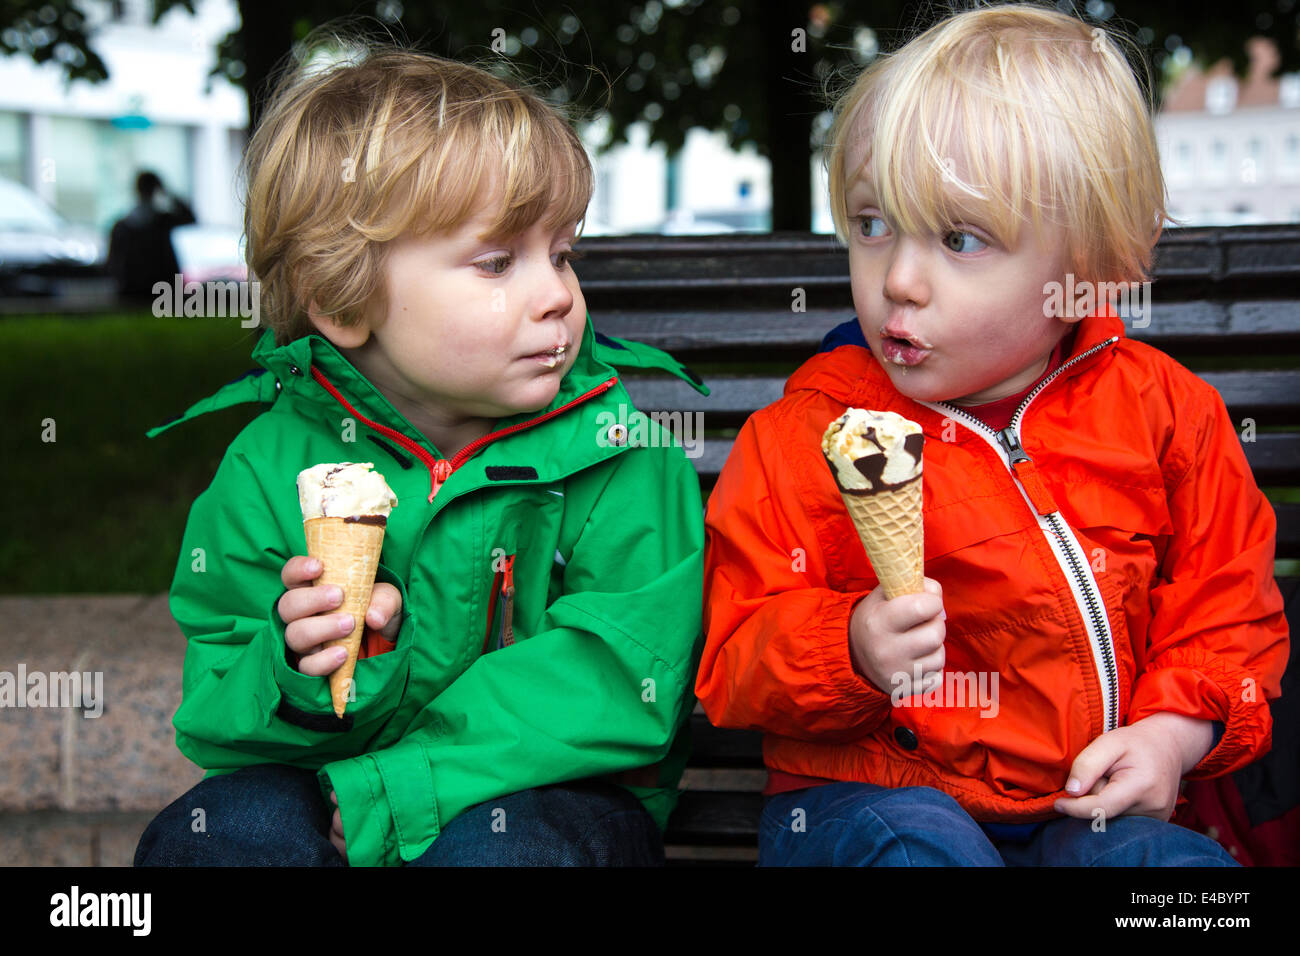 Two Toddlers eating Ice-creams, Montreuil-sur-Mer, Pas-de-Calais, France - Stock Image